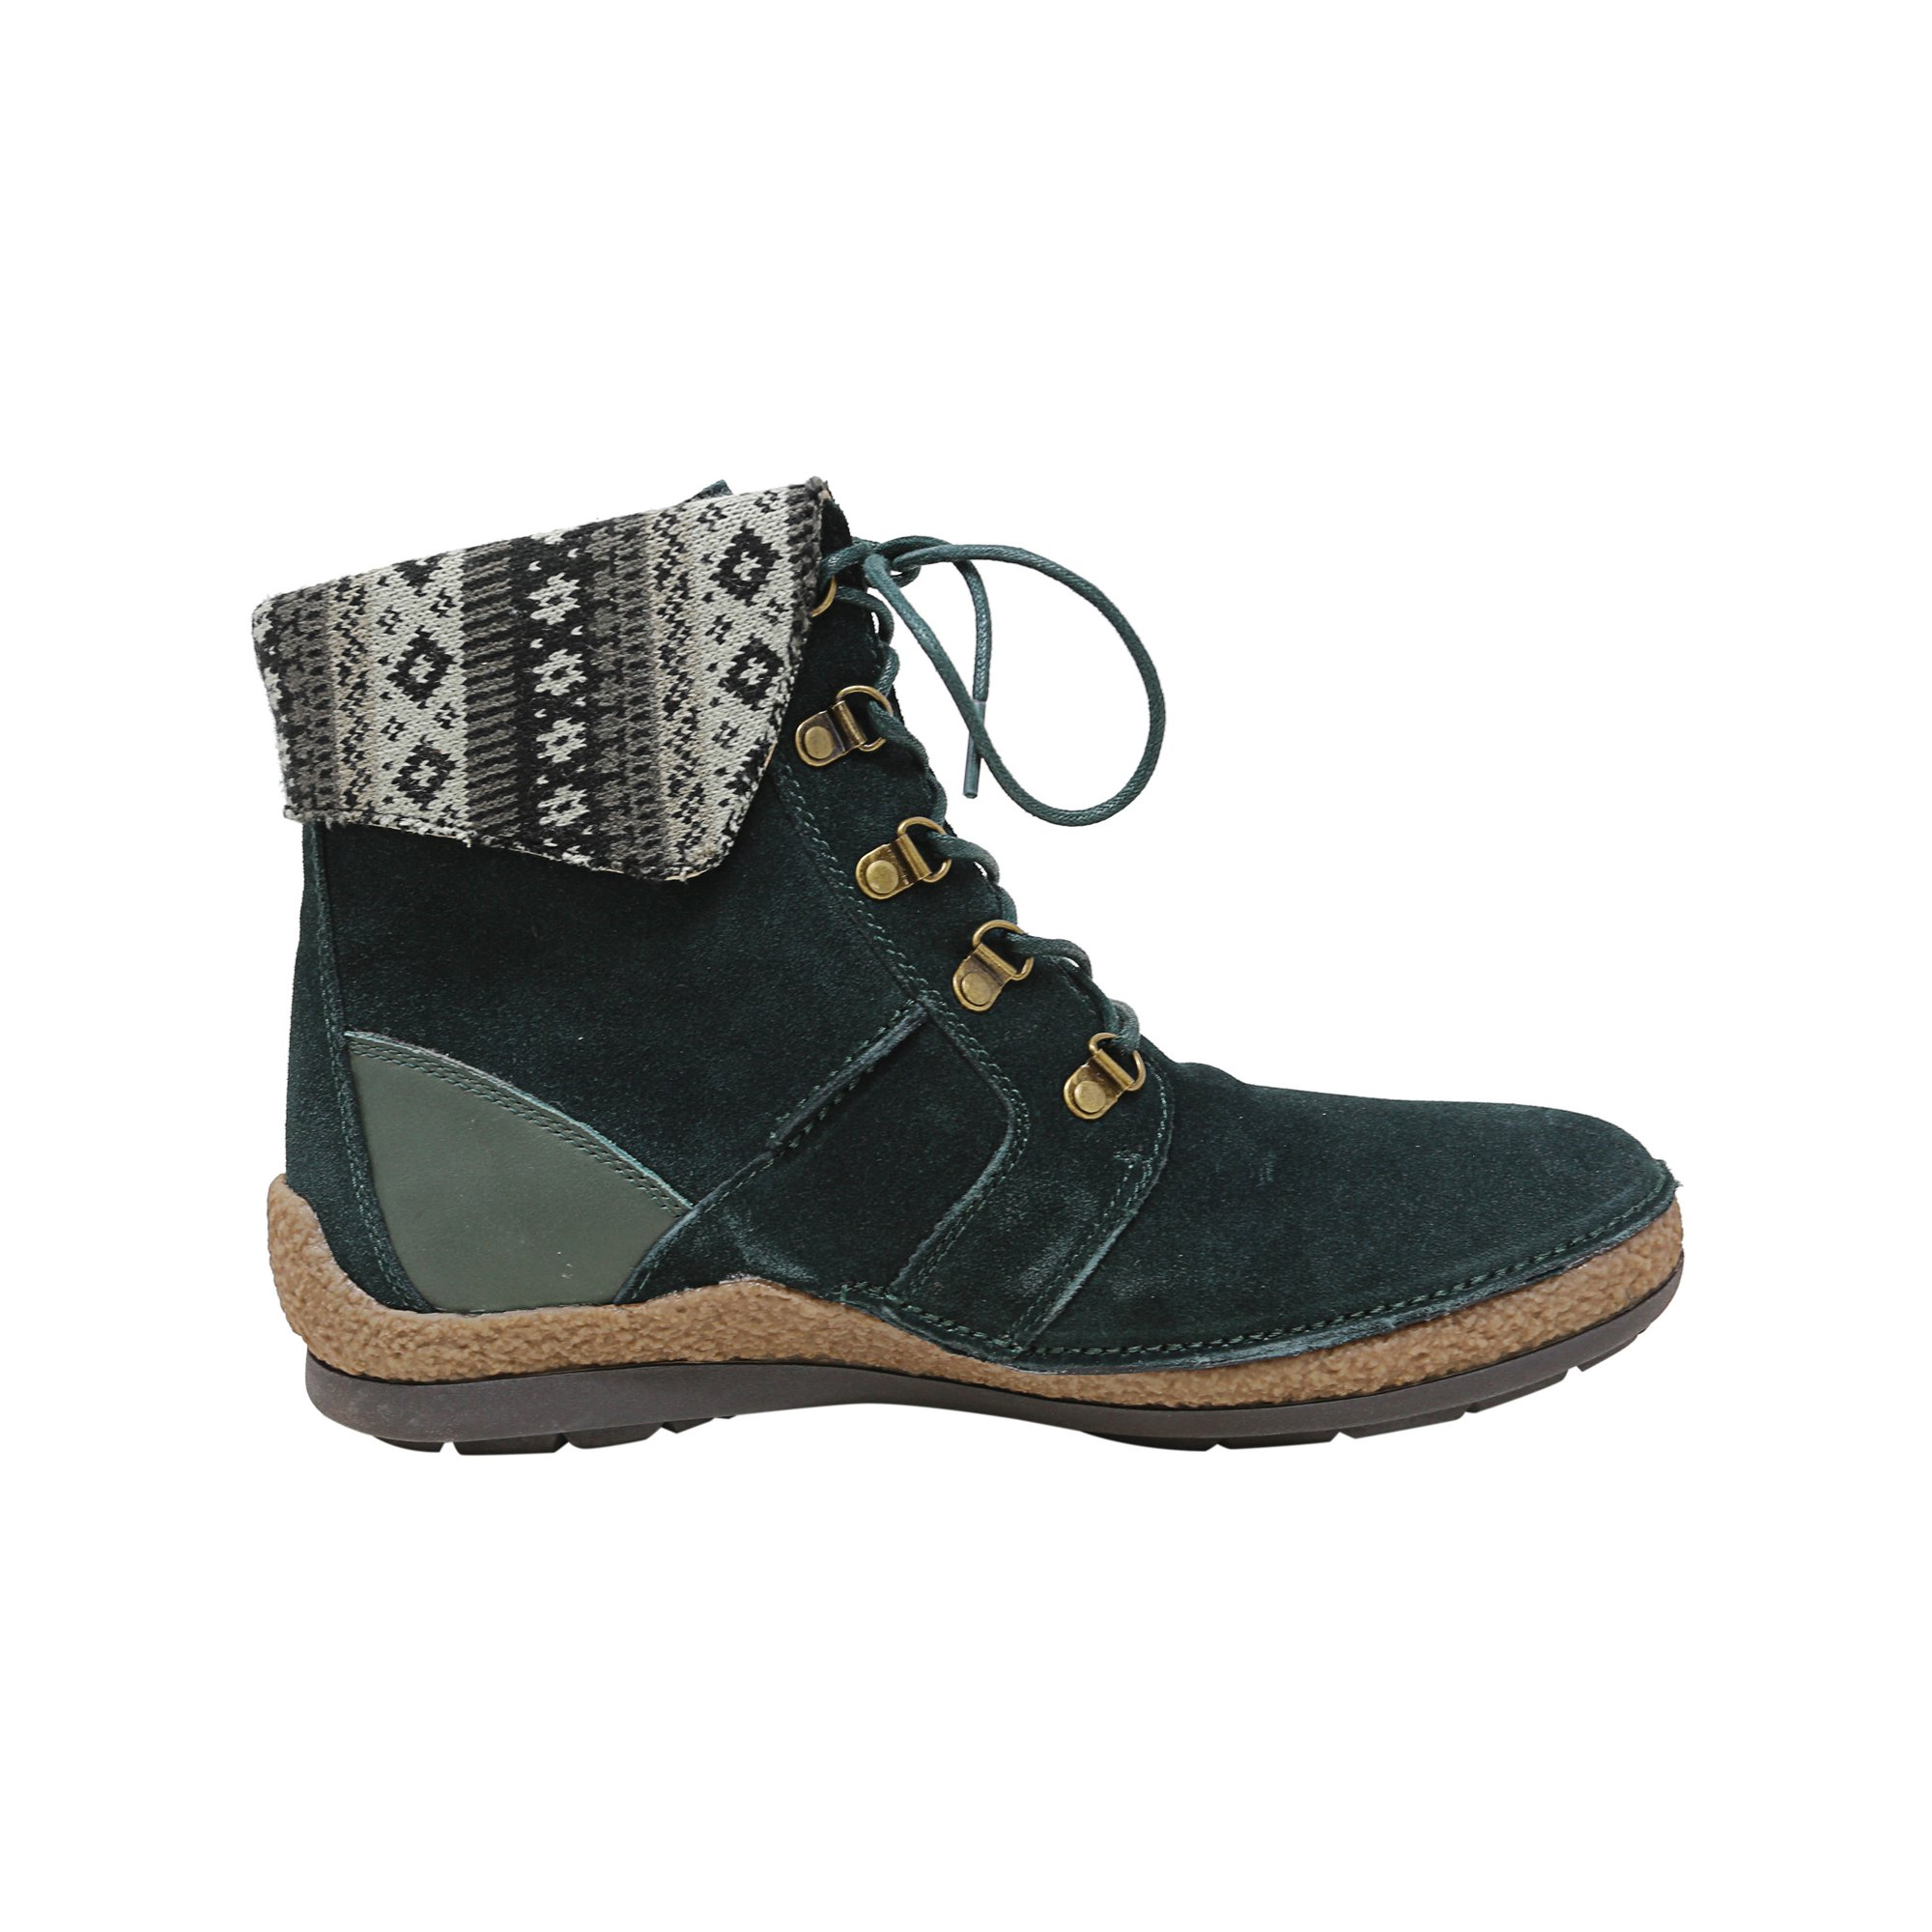 57d9d107b5a Propet Women's Dayna Forest Green High-Top Leather Boot - 11W